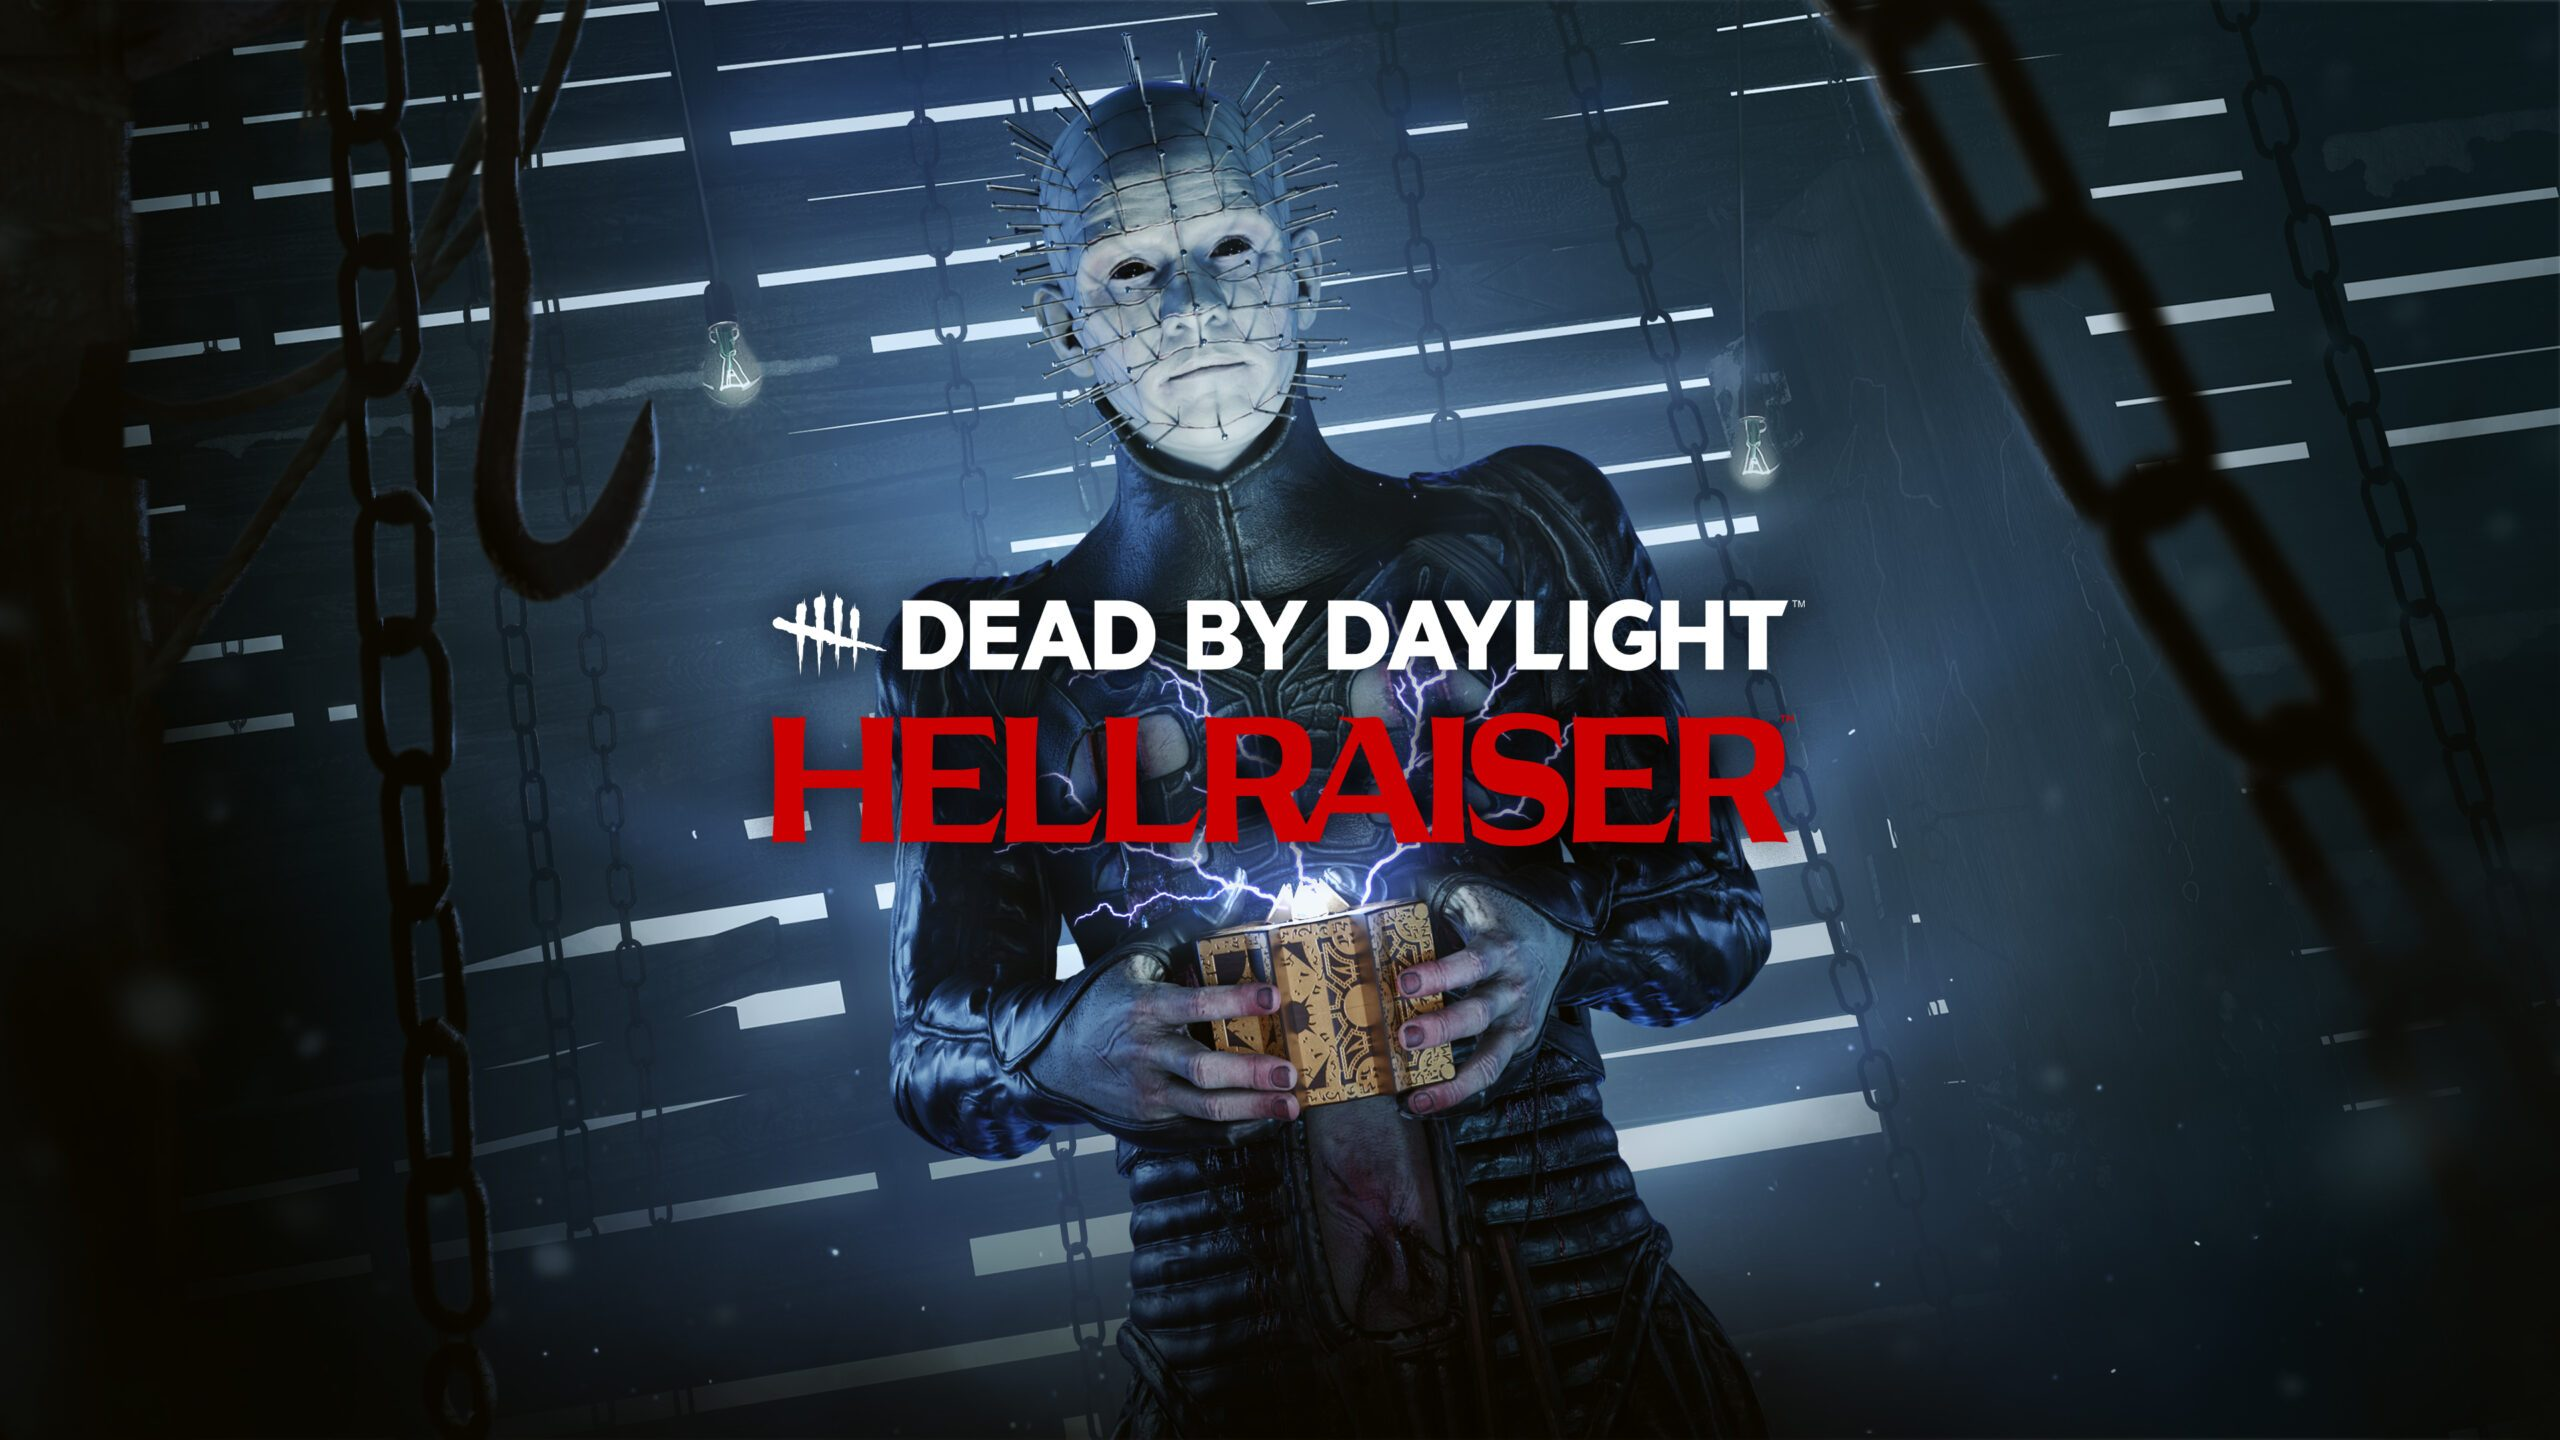 the-puzzle-box-is-open:-pinhead-joins-lifeless-by-daylight